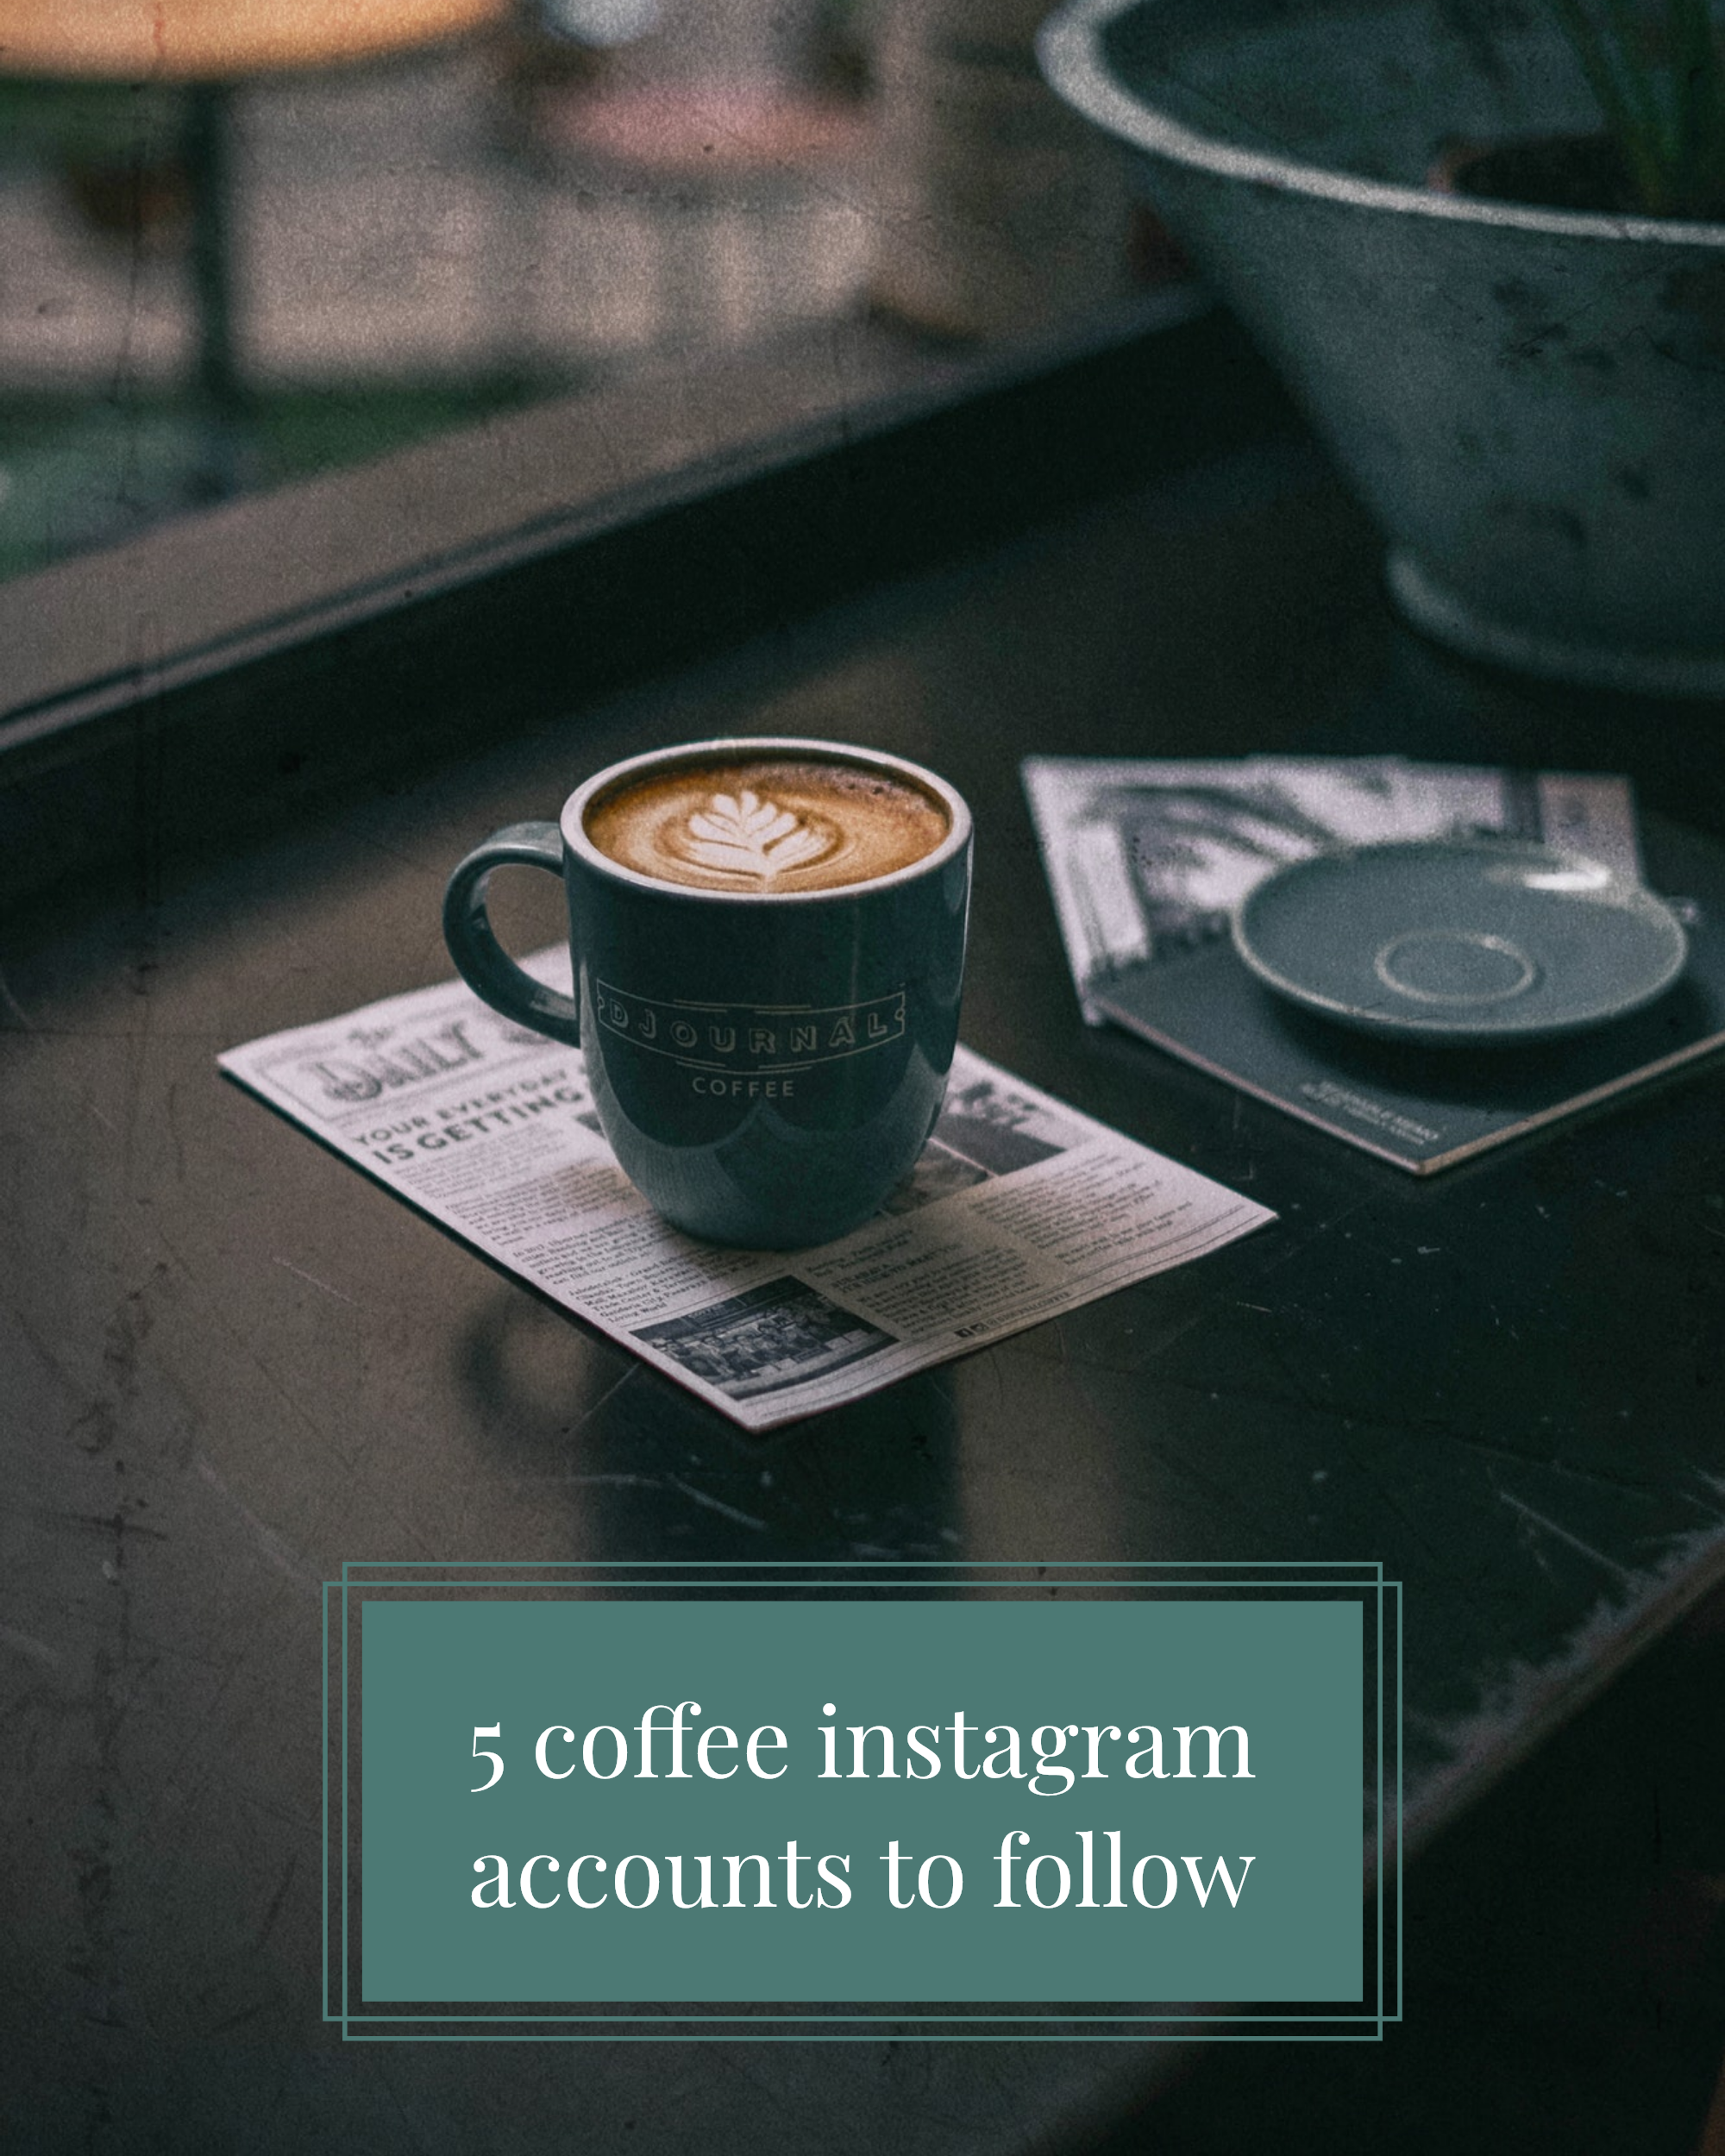 5 coffee instagram accounts to follow Instagram Post Template